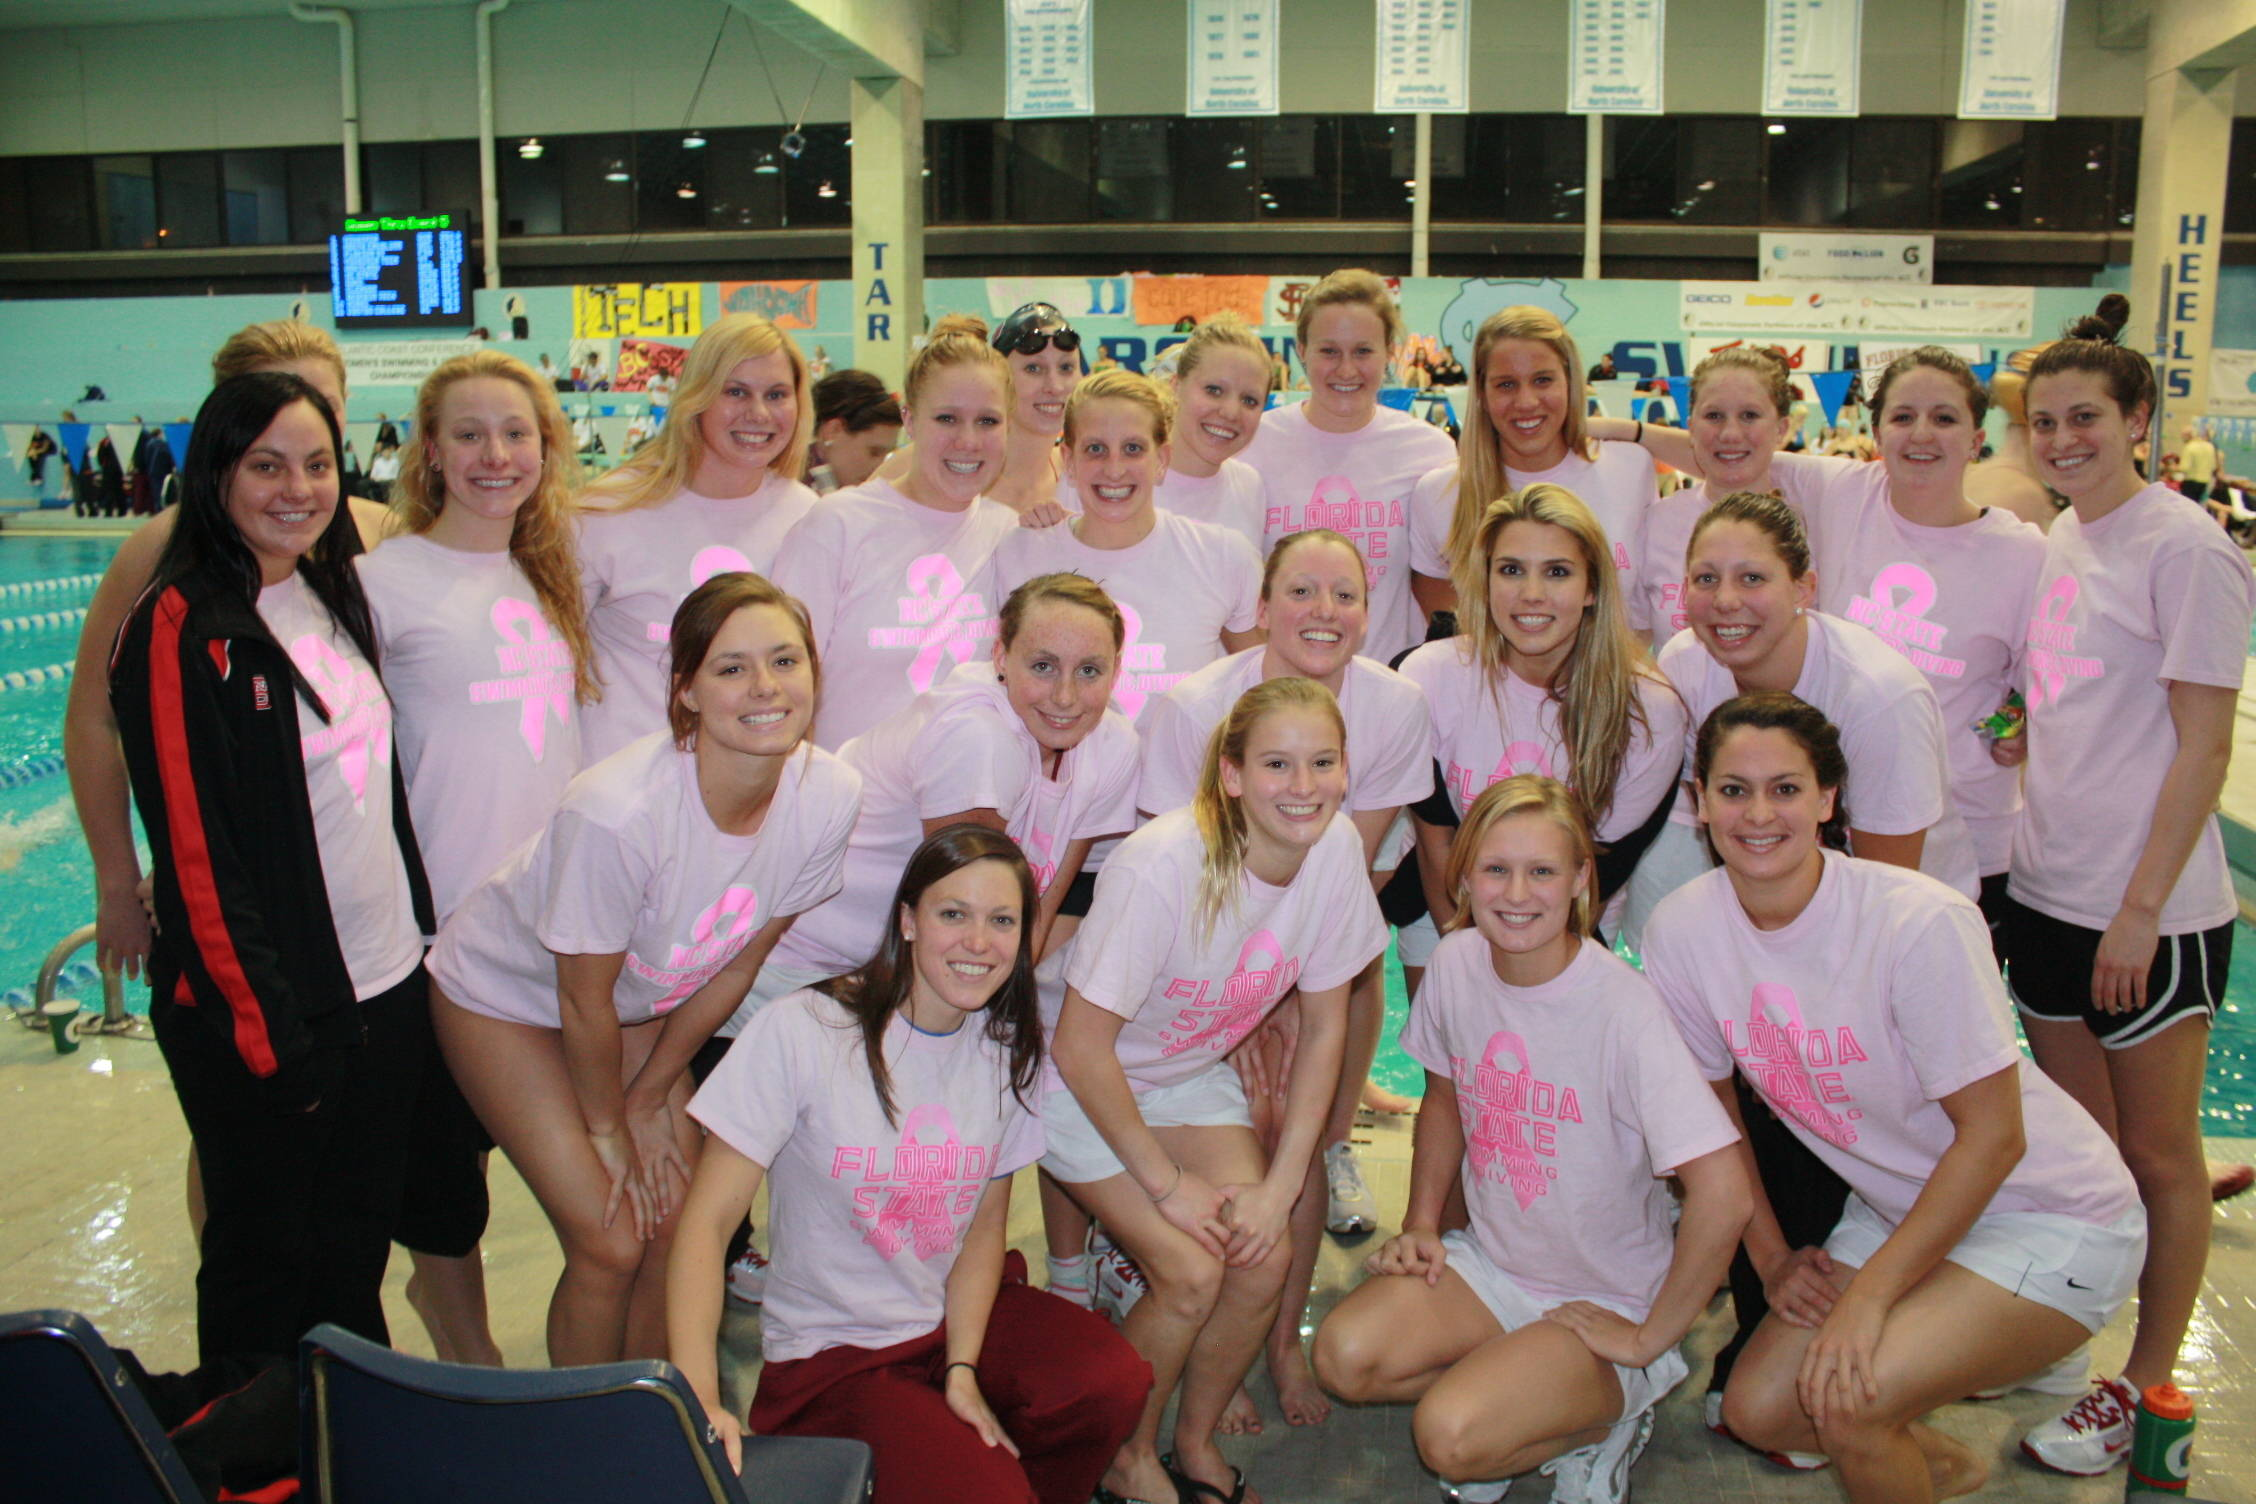 ACC Championships, the Seminoles and the Wolfpack show off their breast cancer awareness shirts.